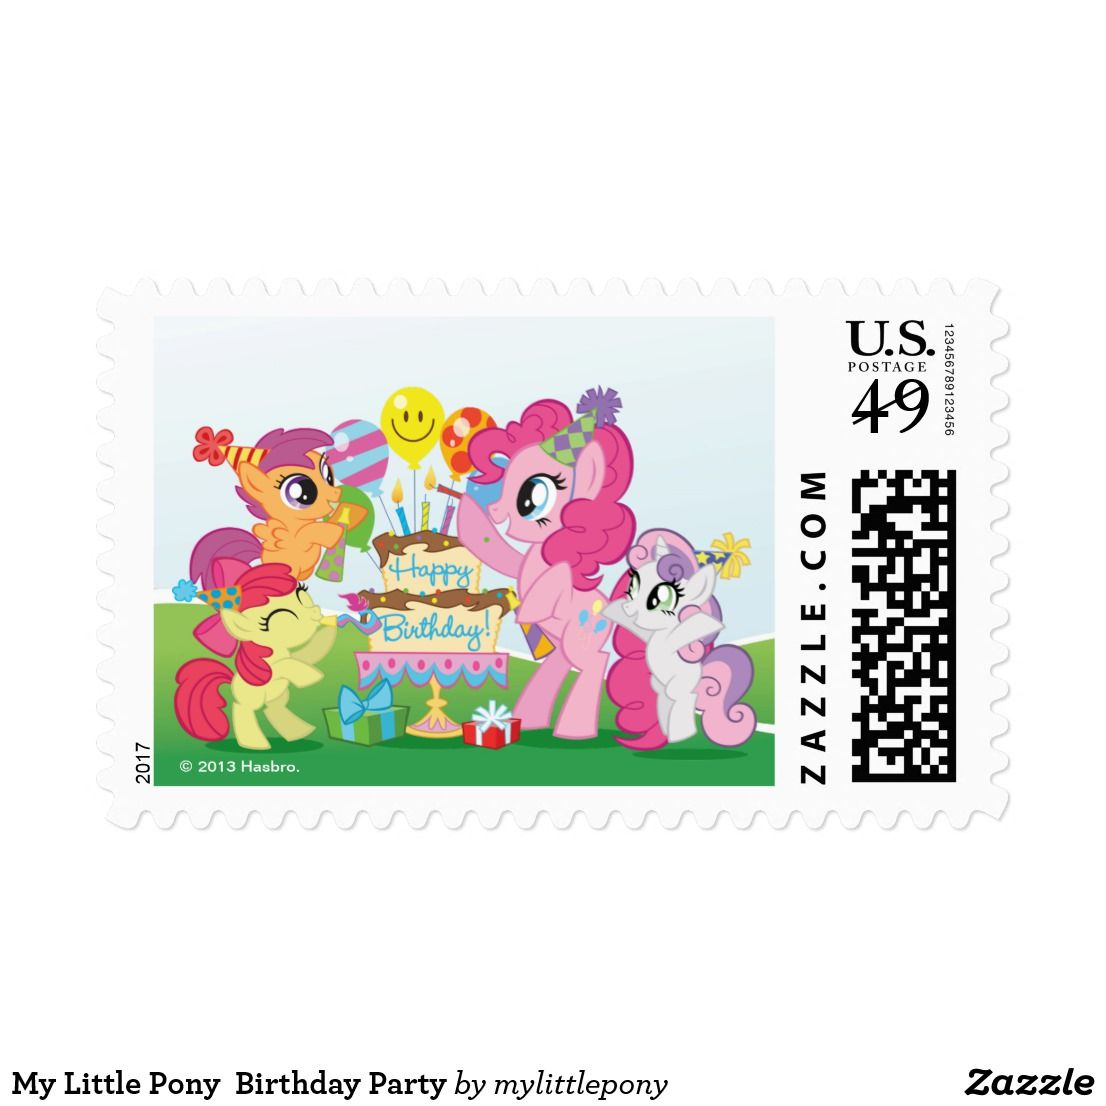 My Little Pony Birthday Party Postage (With